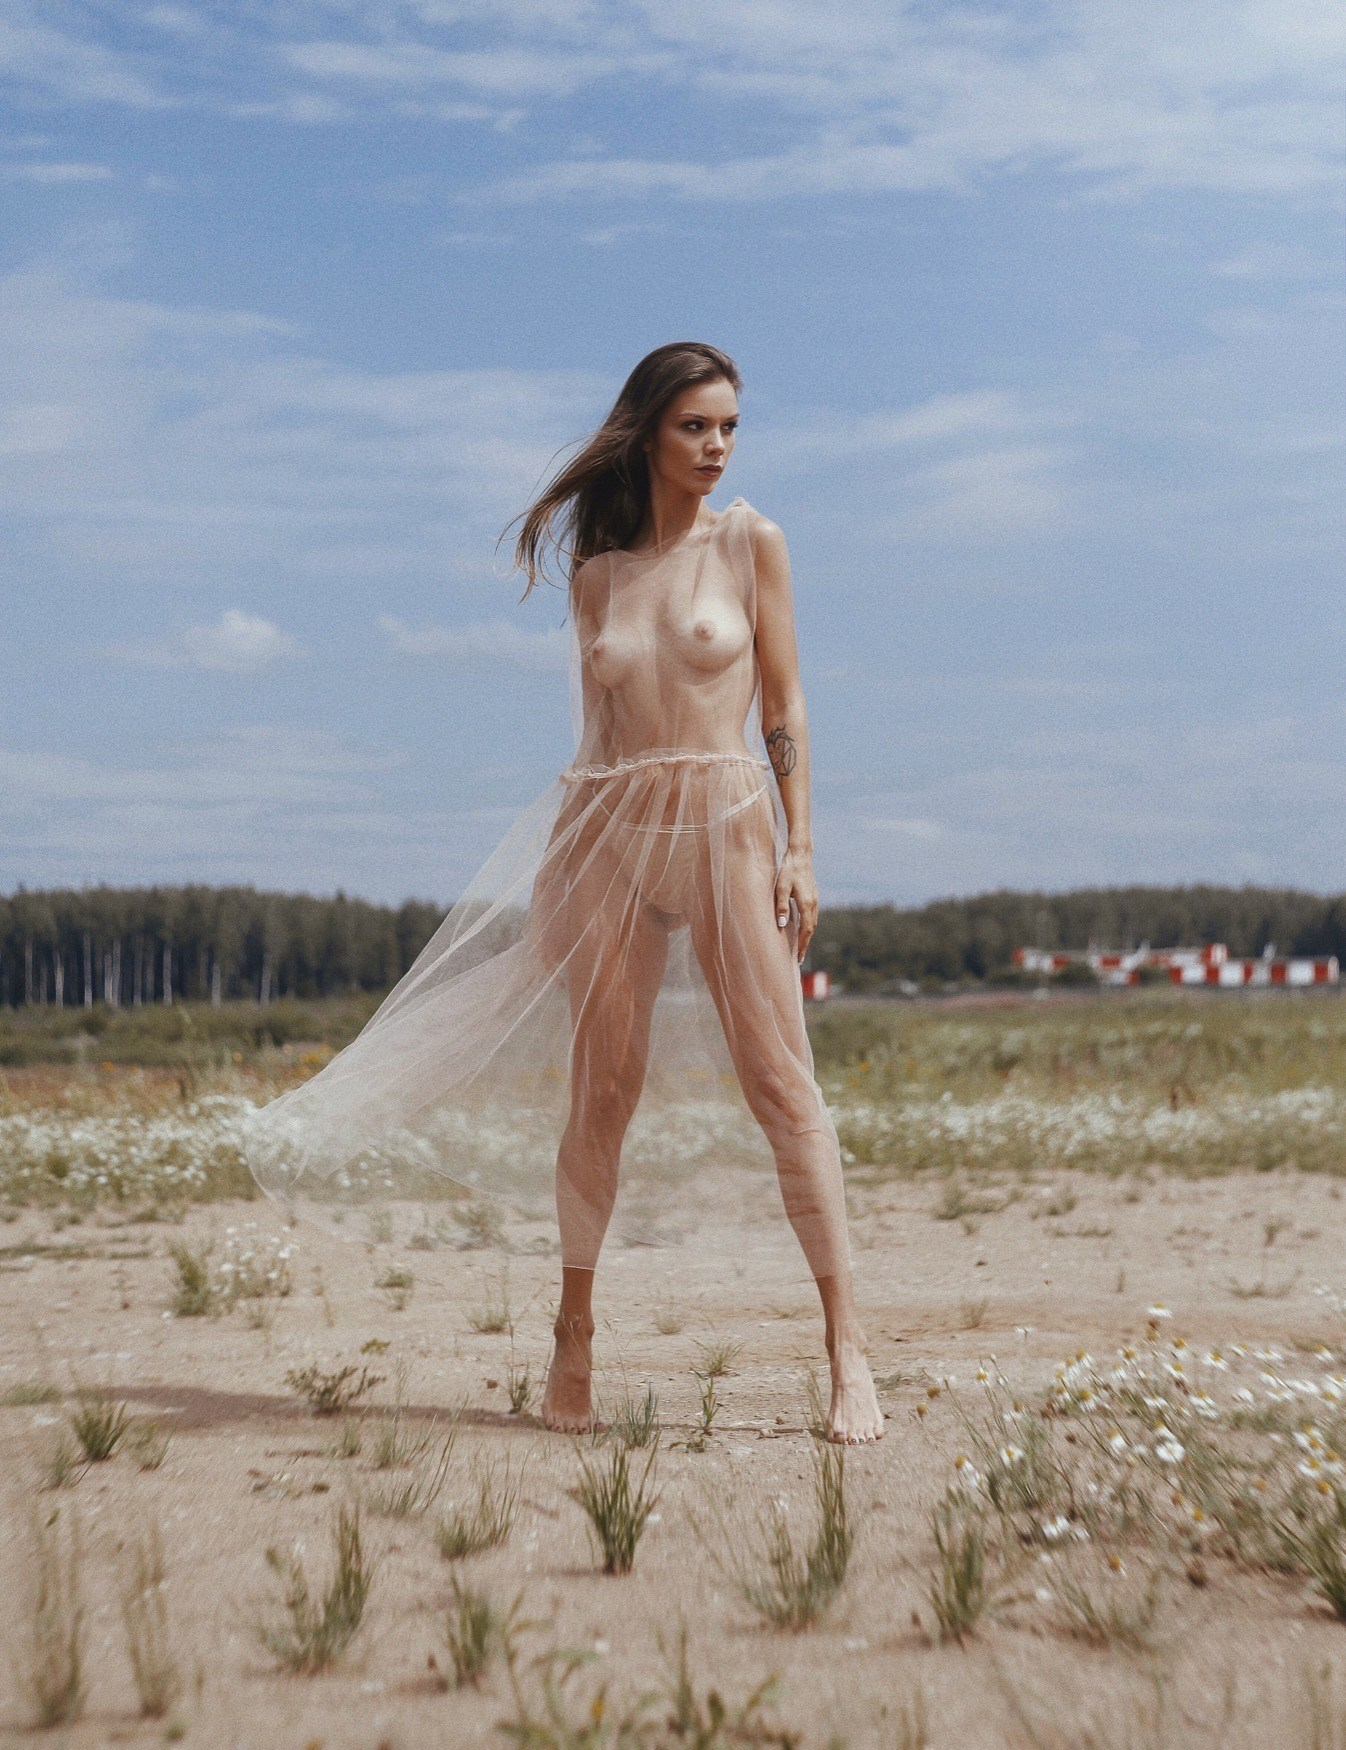 Polina by Alina Gaf for Self Control